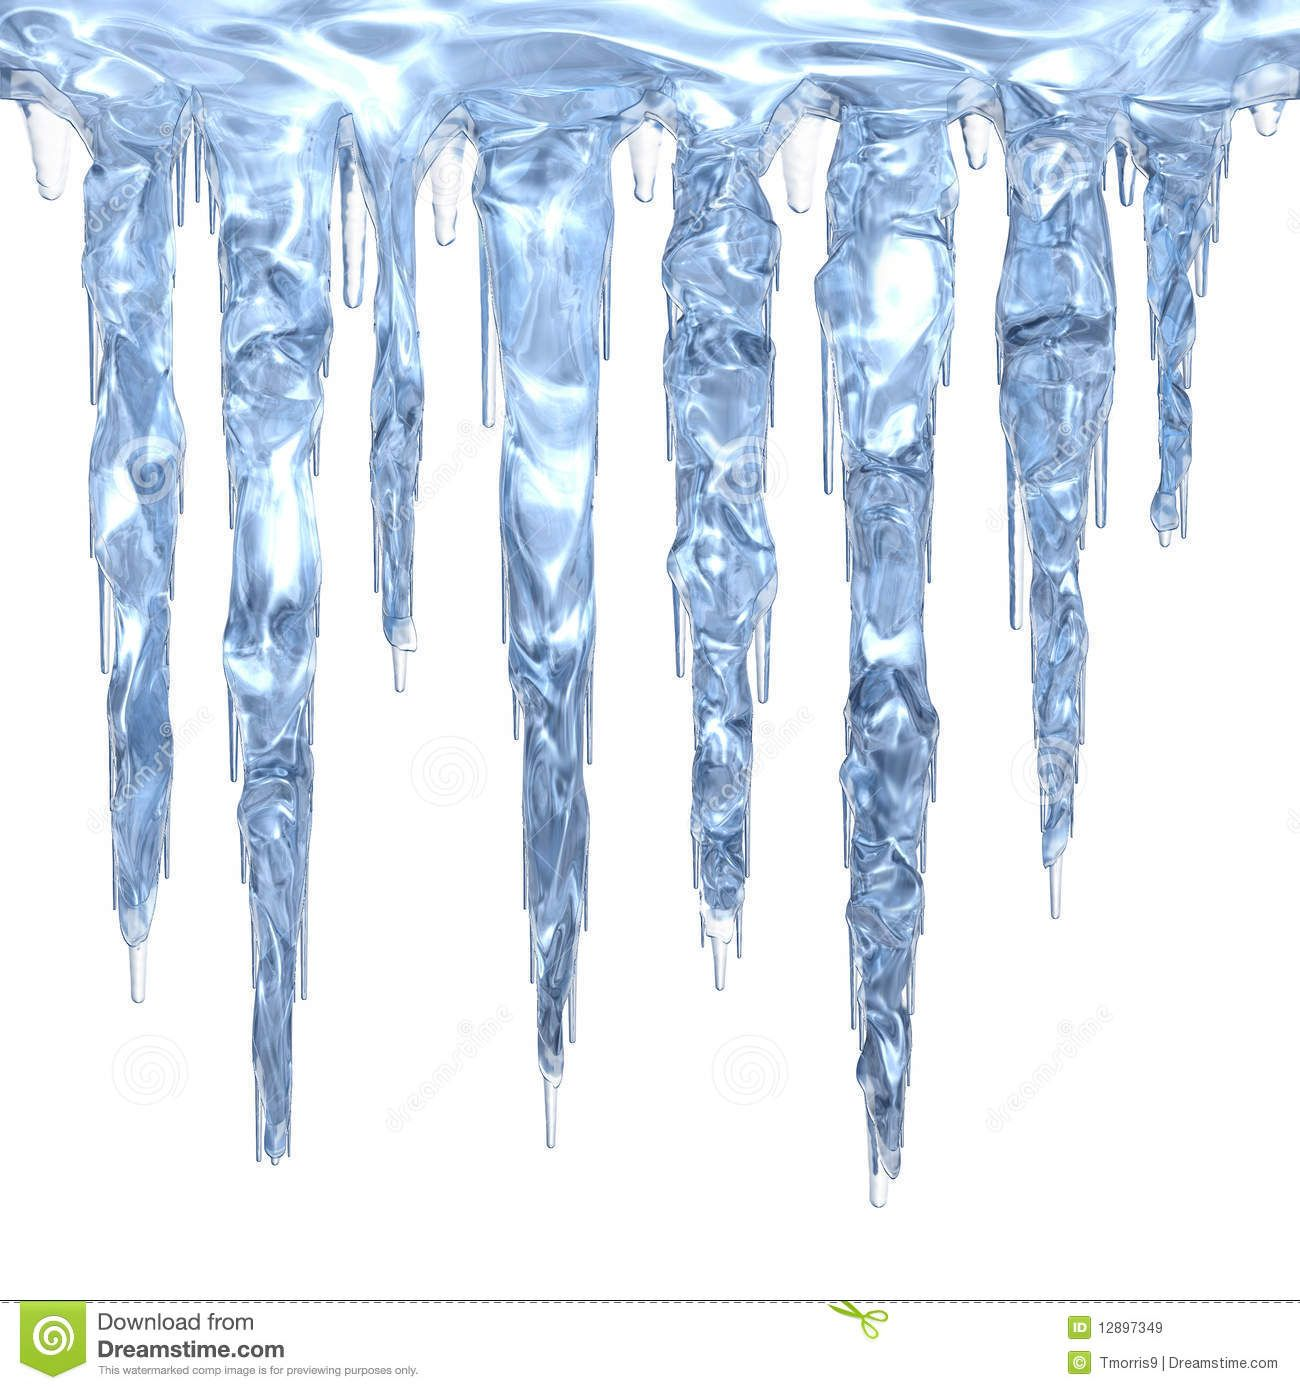 Icicles clipart single, Icicles single Transparent FREE for.